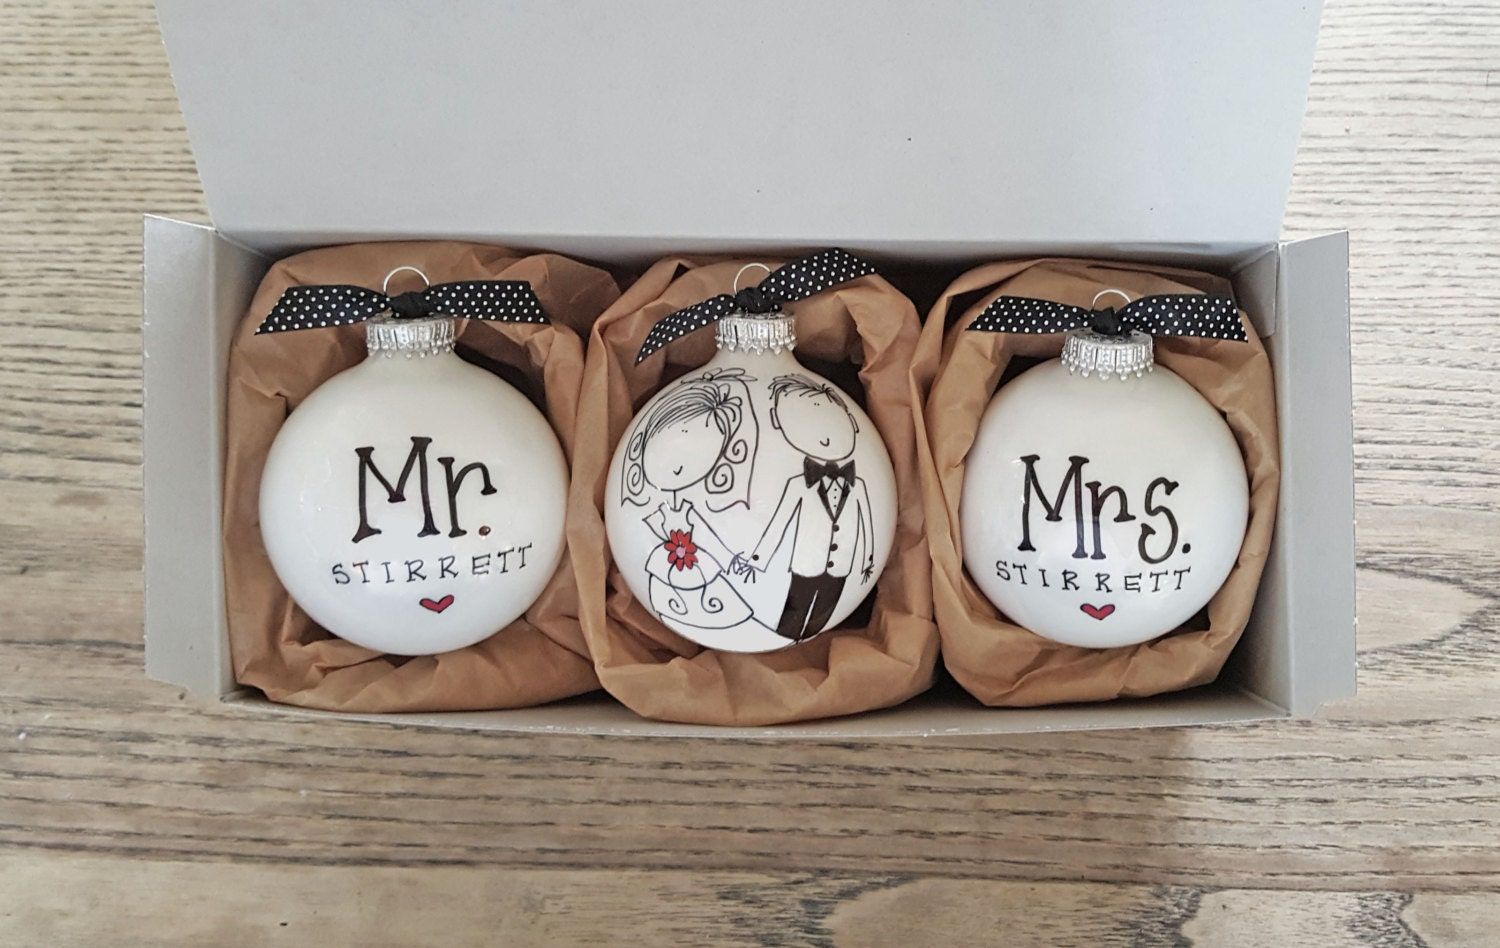 Wedding Gift Ideas For Couples: Wedding Gift Gift For The Couple Mr. And Mrs. Gift